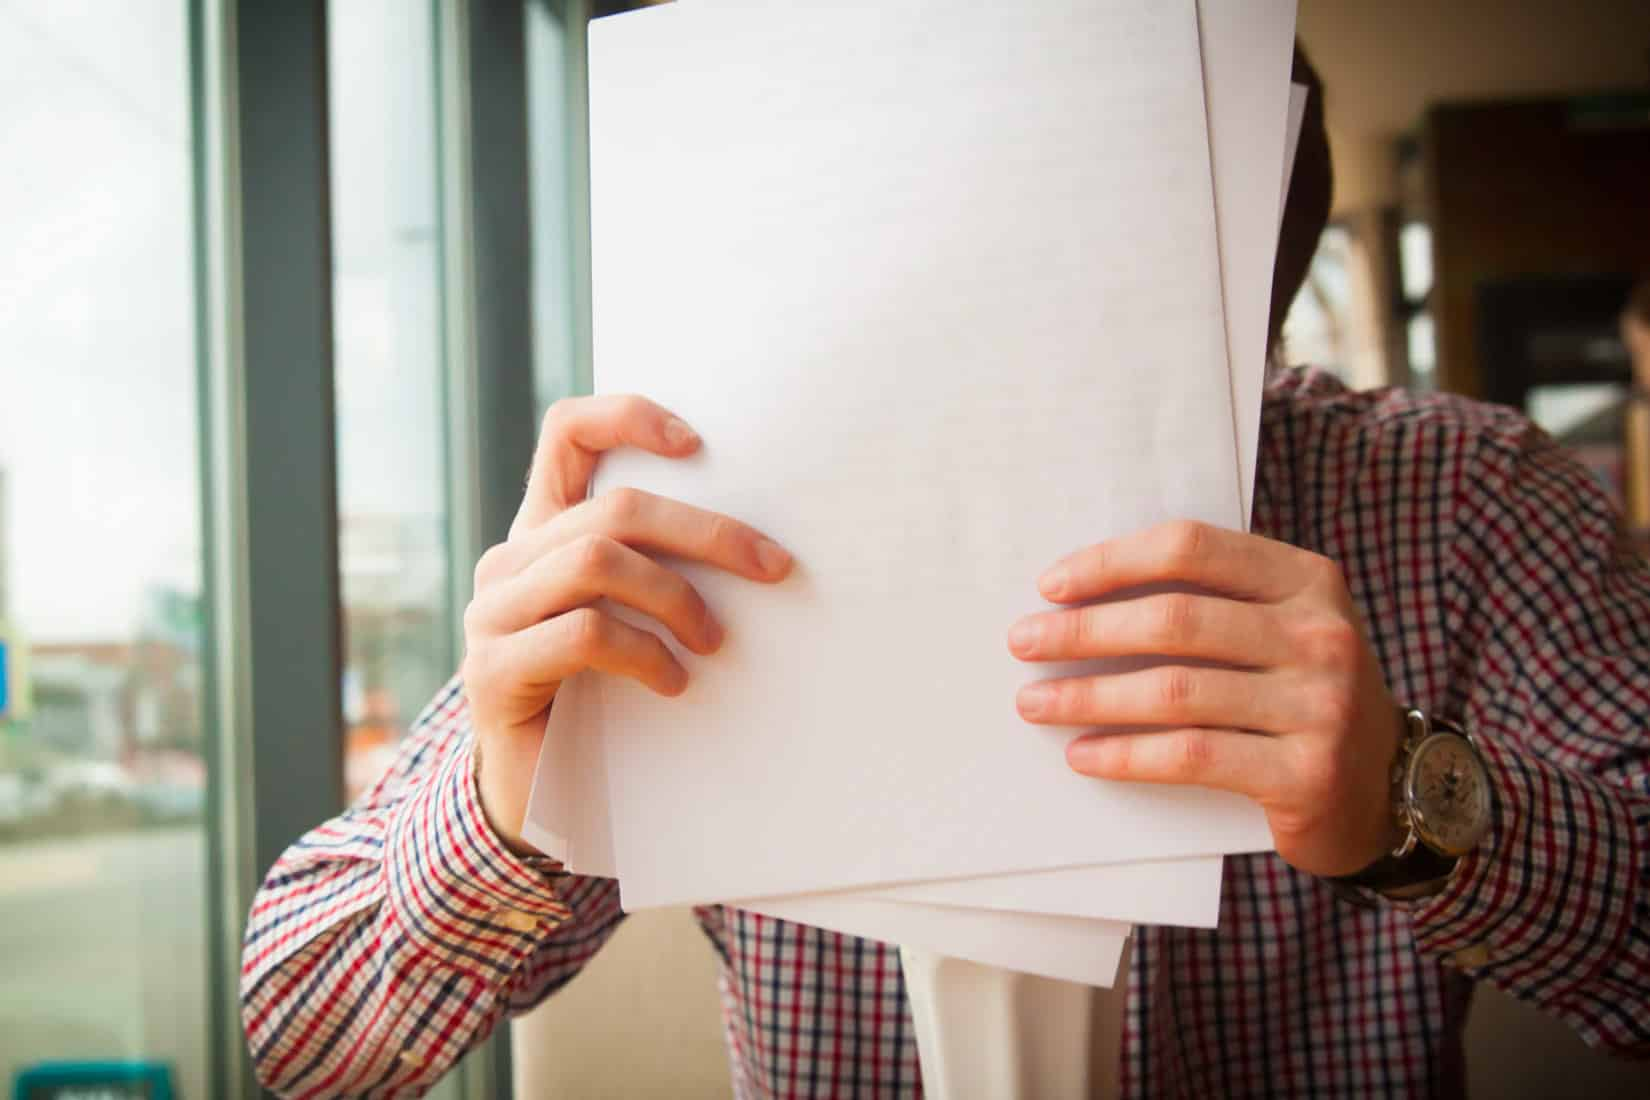 Man shuffling papers into order